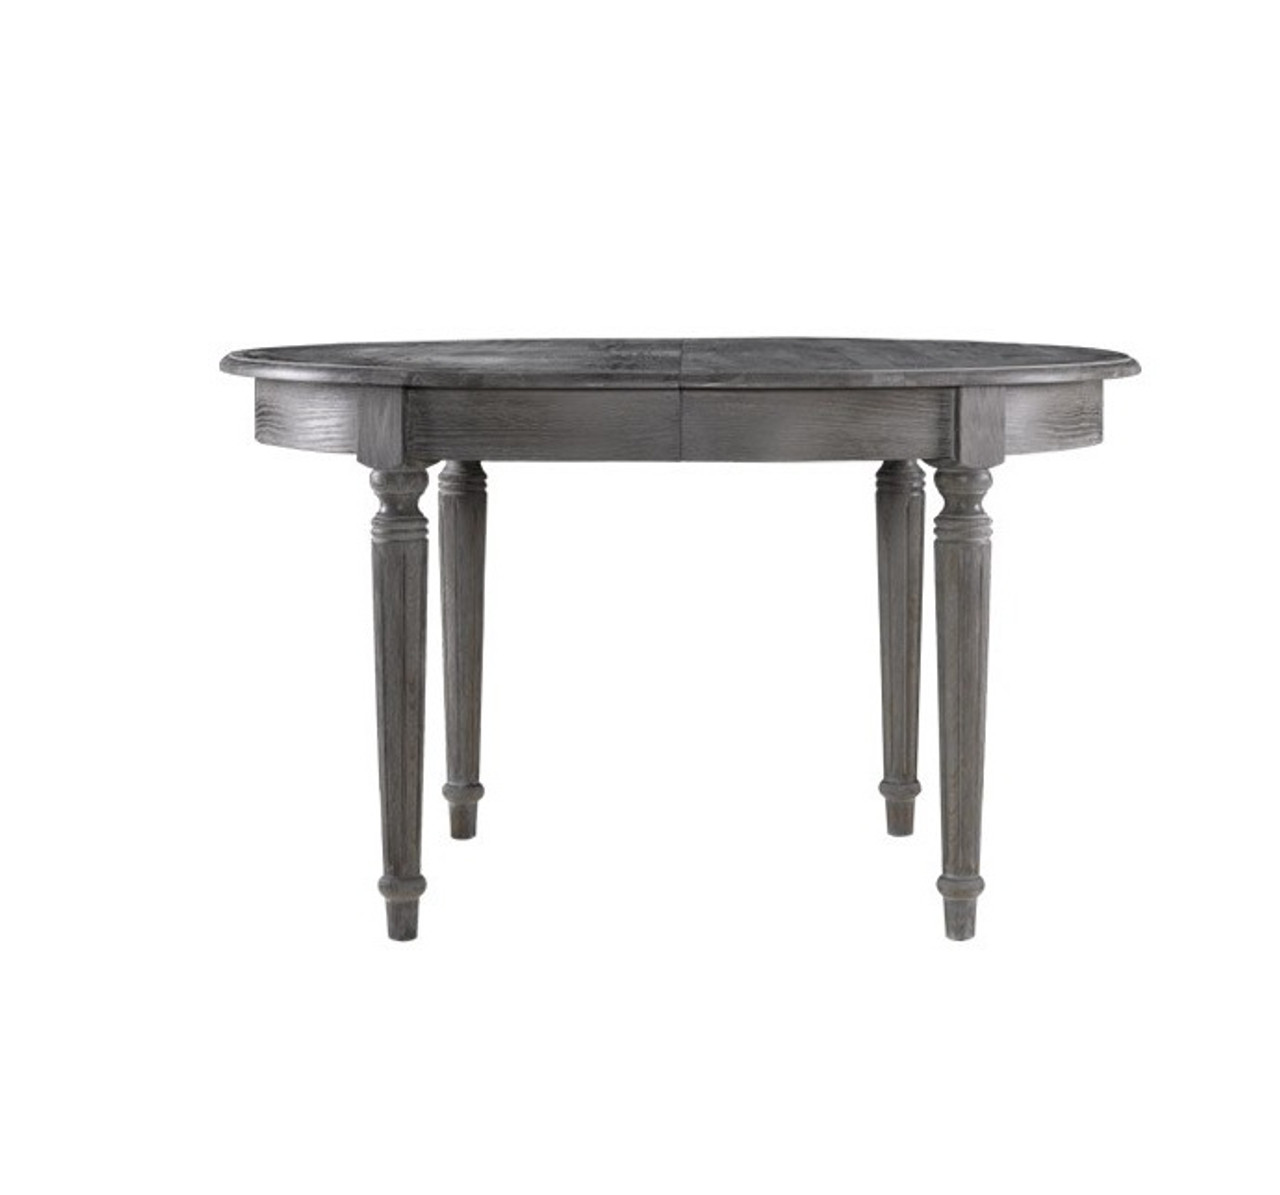 French Oak Gray Round Extendable Dining Table Zin Home - 48 round oak dining table